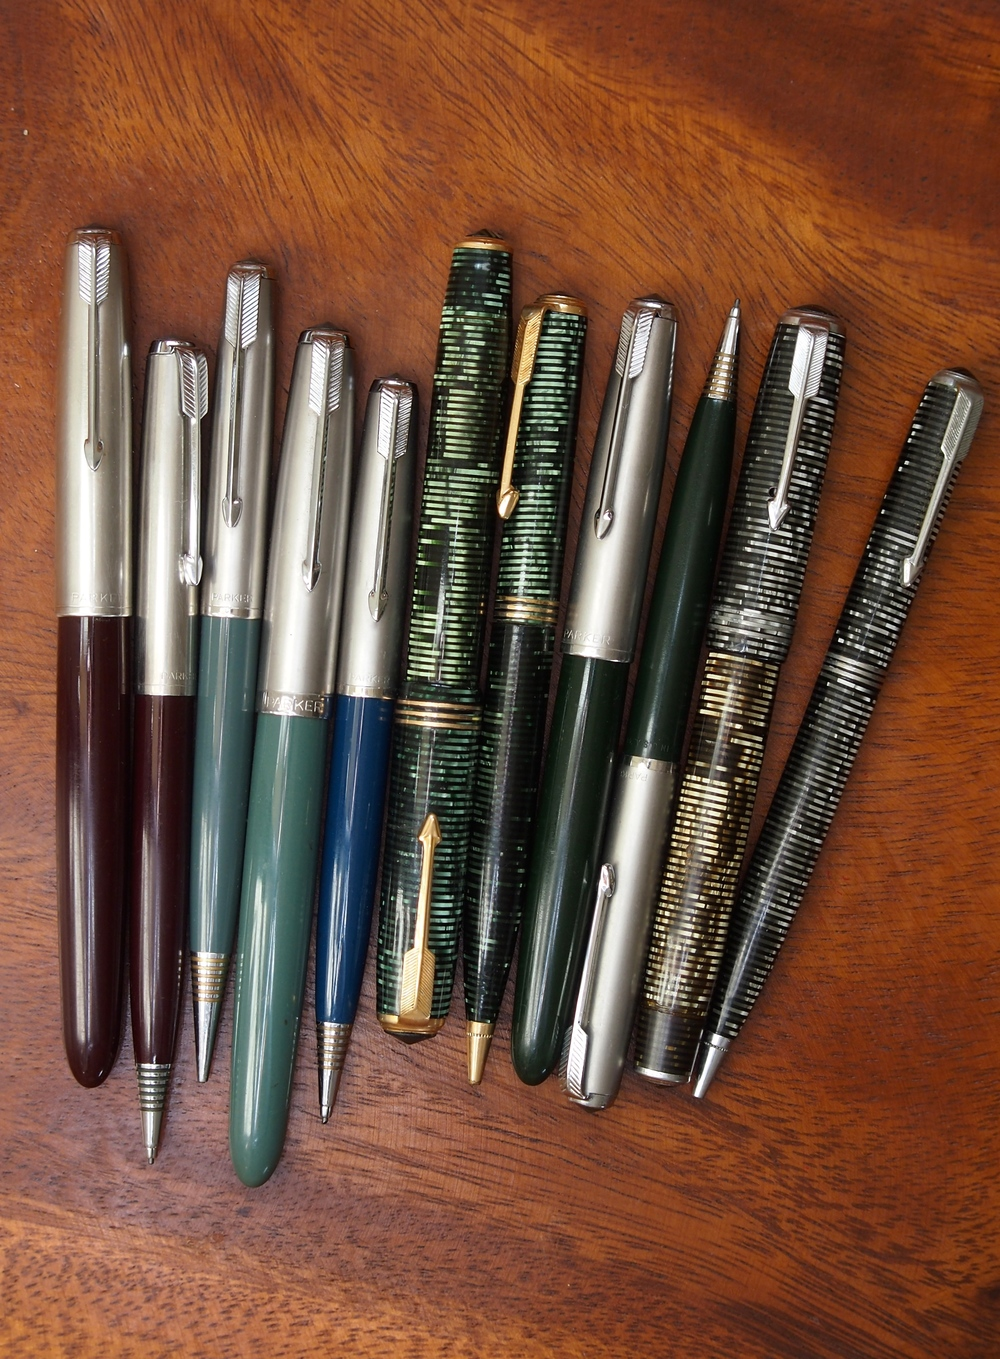 My collection of Parker 51 and vacuumatic pen & pencil sets. Somehow, I misplaced the cedar blue 51 fountain pen that I bought with the pencil.